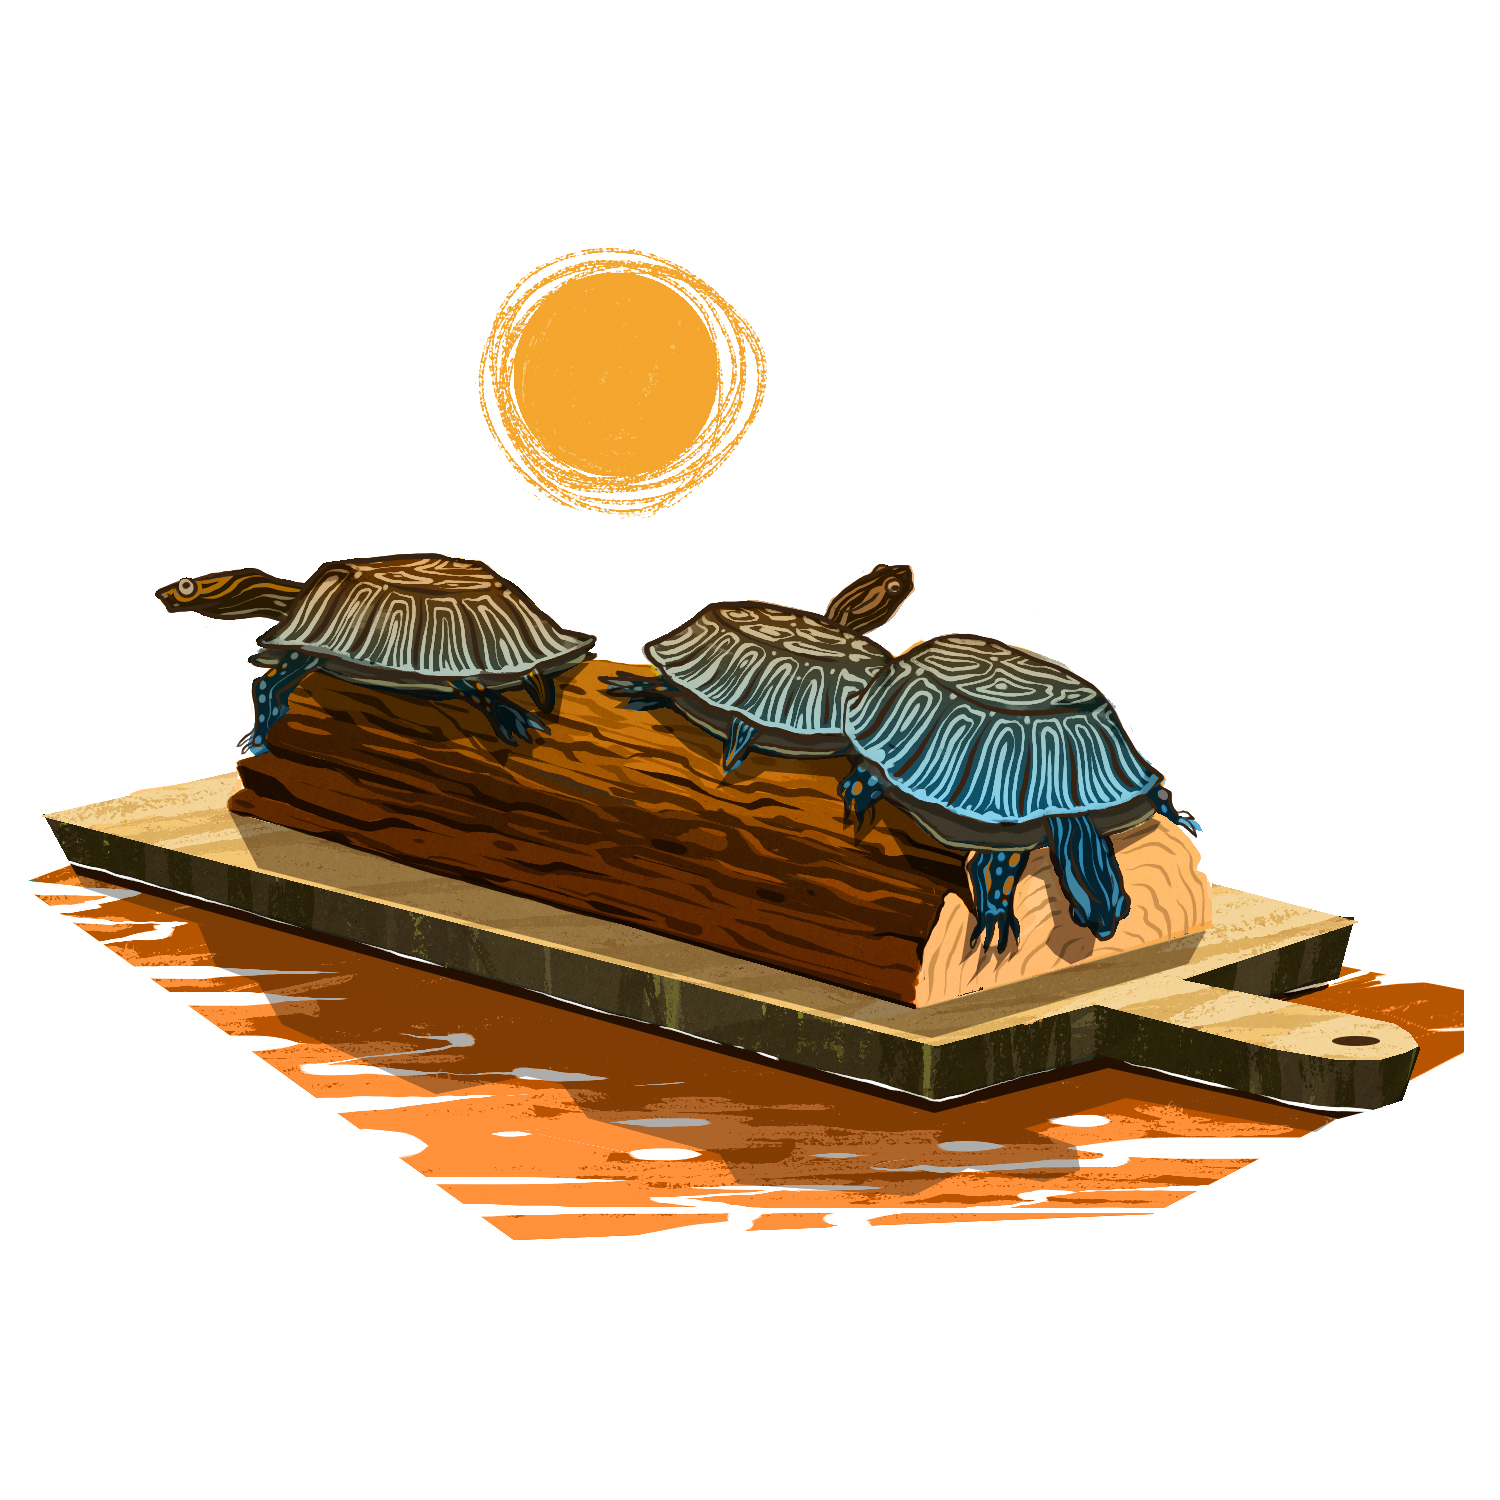 Spot - Sun Basking - Turtles are a cold-blooded species that conduct heat from objects they rest on while above the water. This is great source of vitamin D and other essential nutrients that help keep a healthy body and shell.